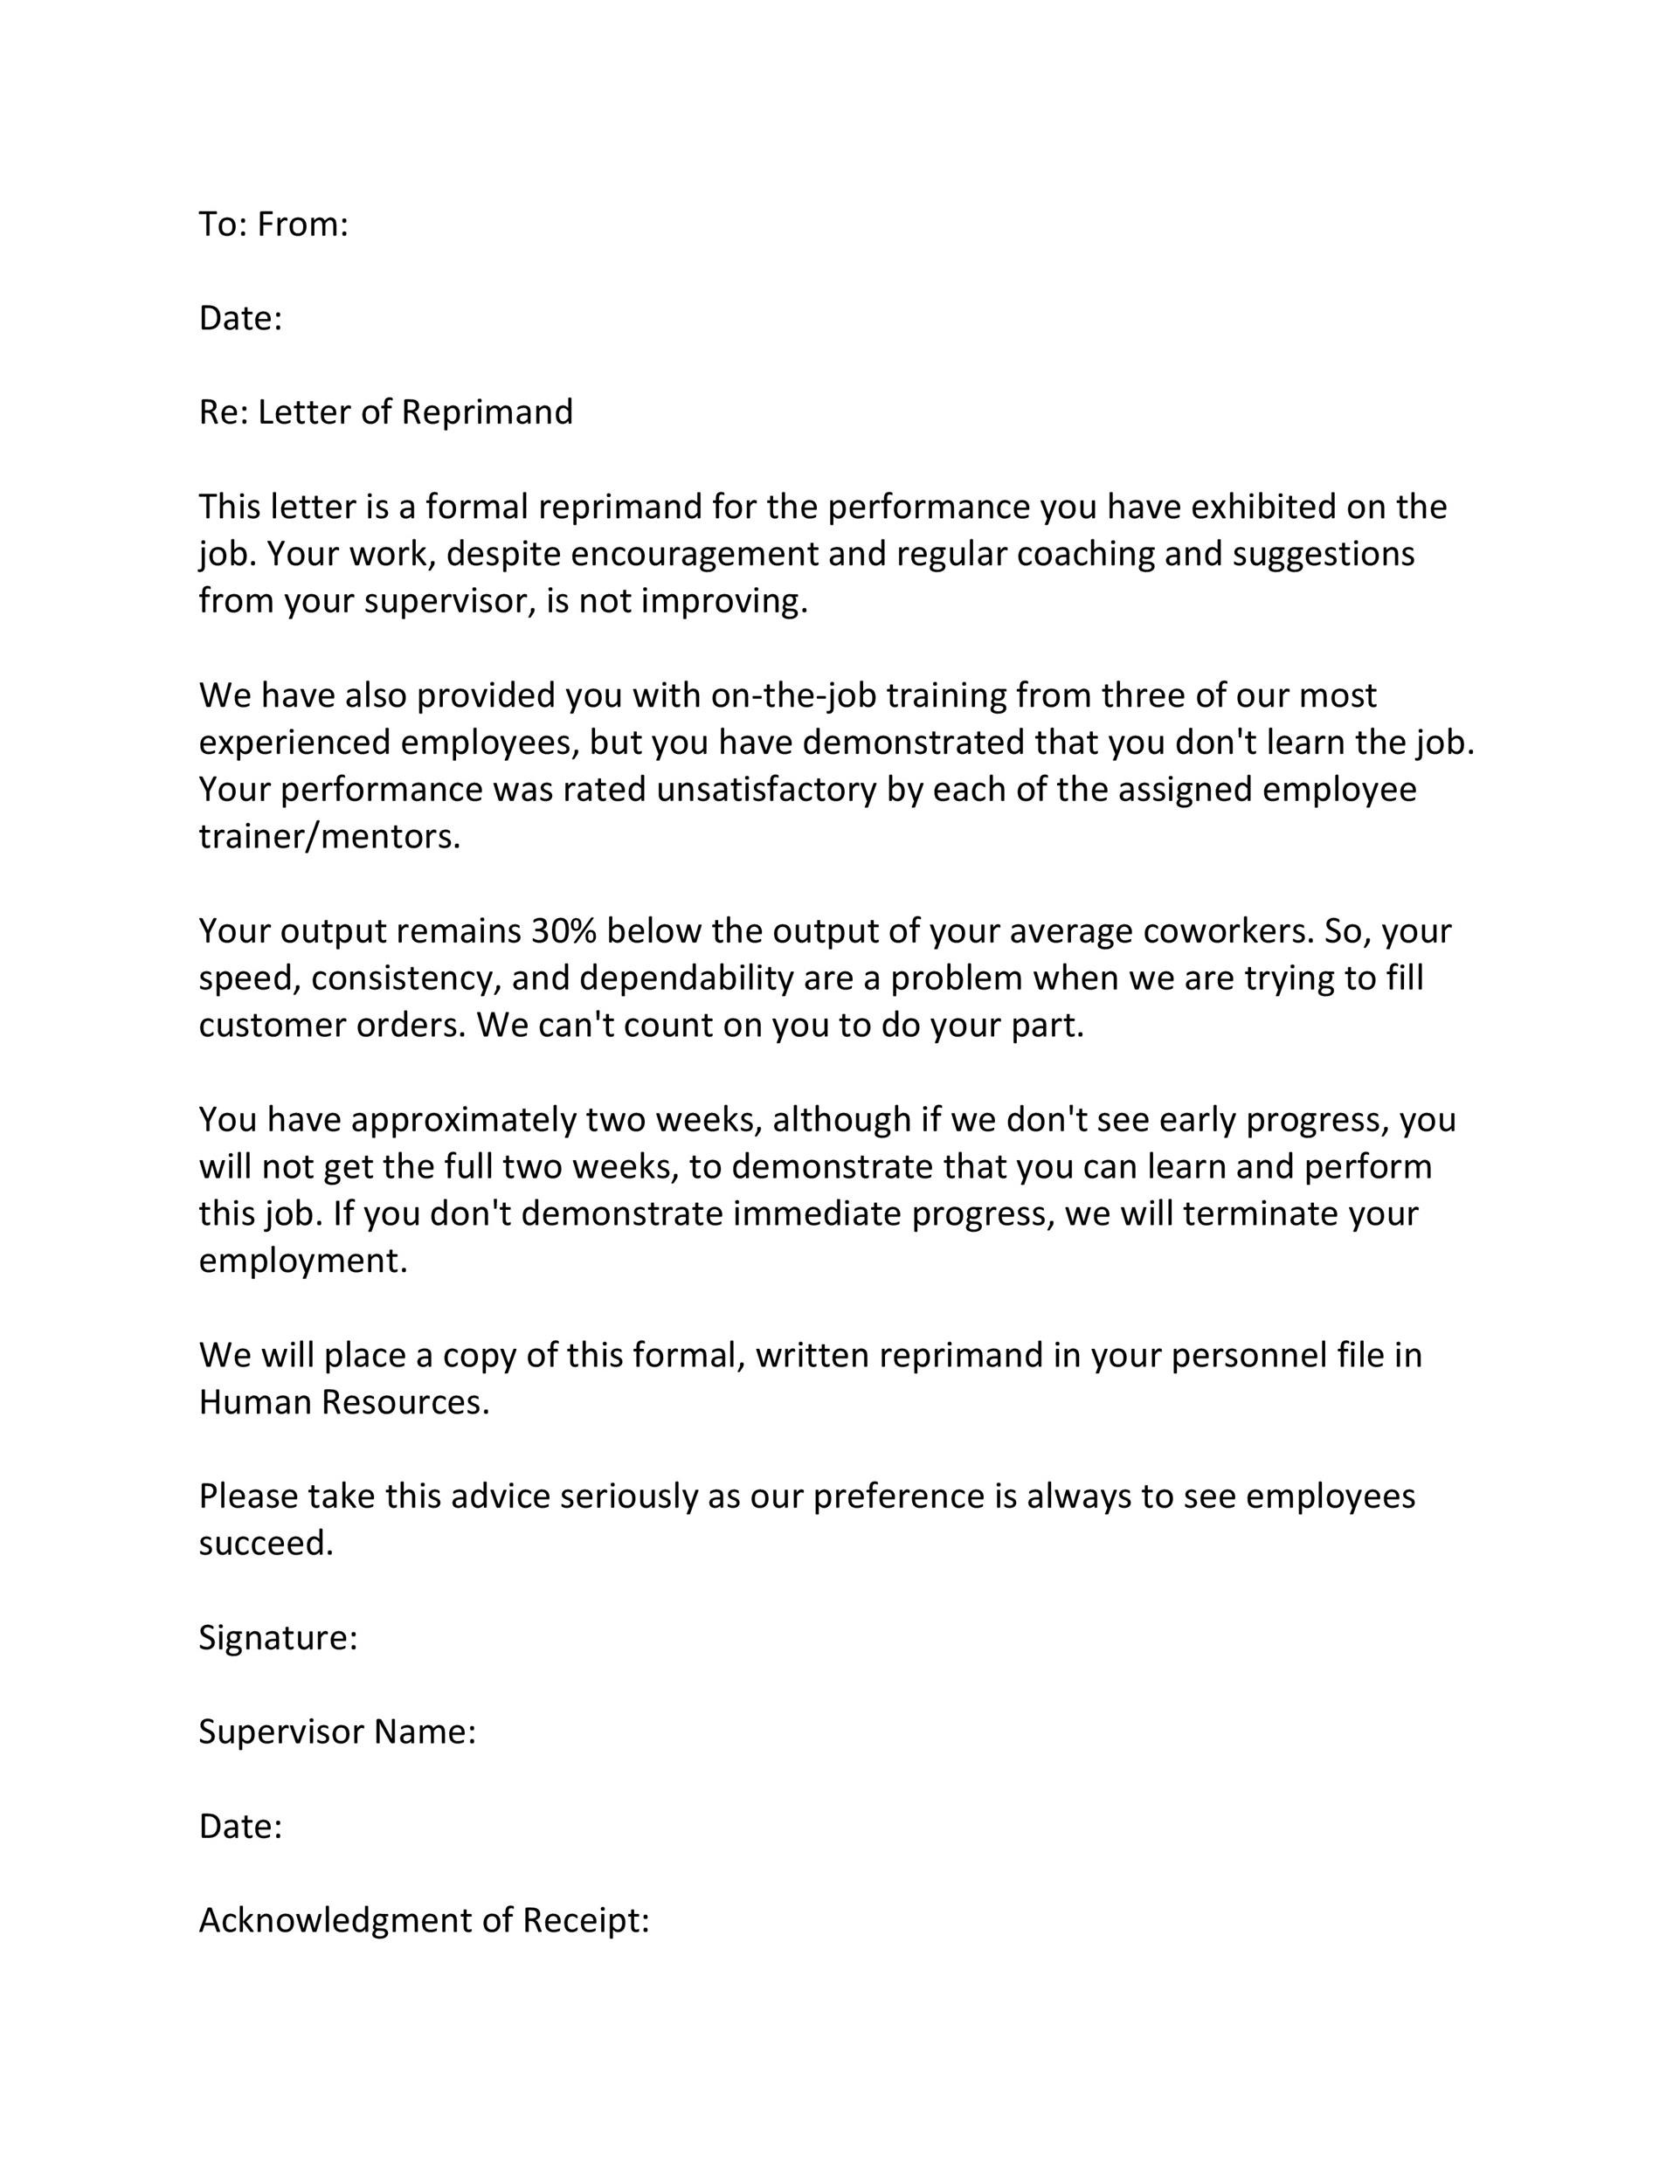 Complimentary Letter About Your Boss from templatelab.com